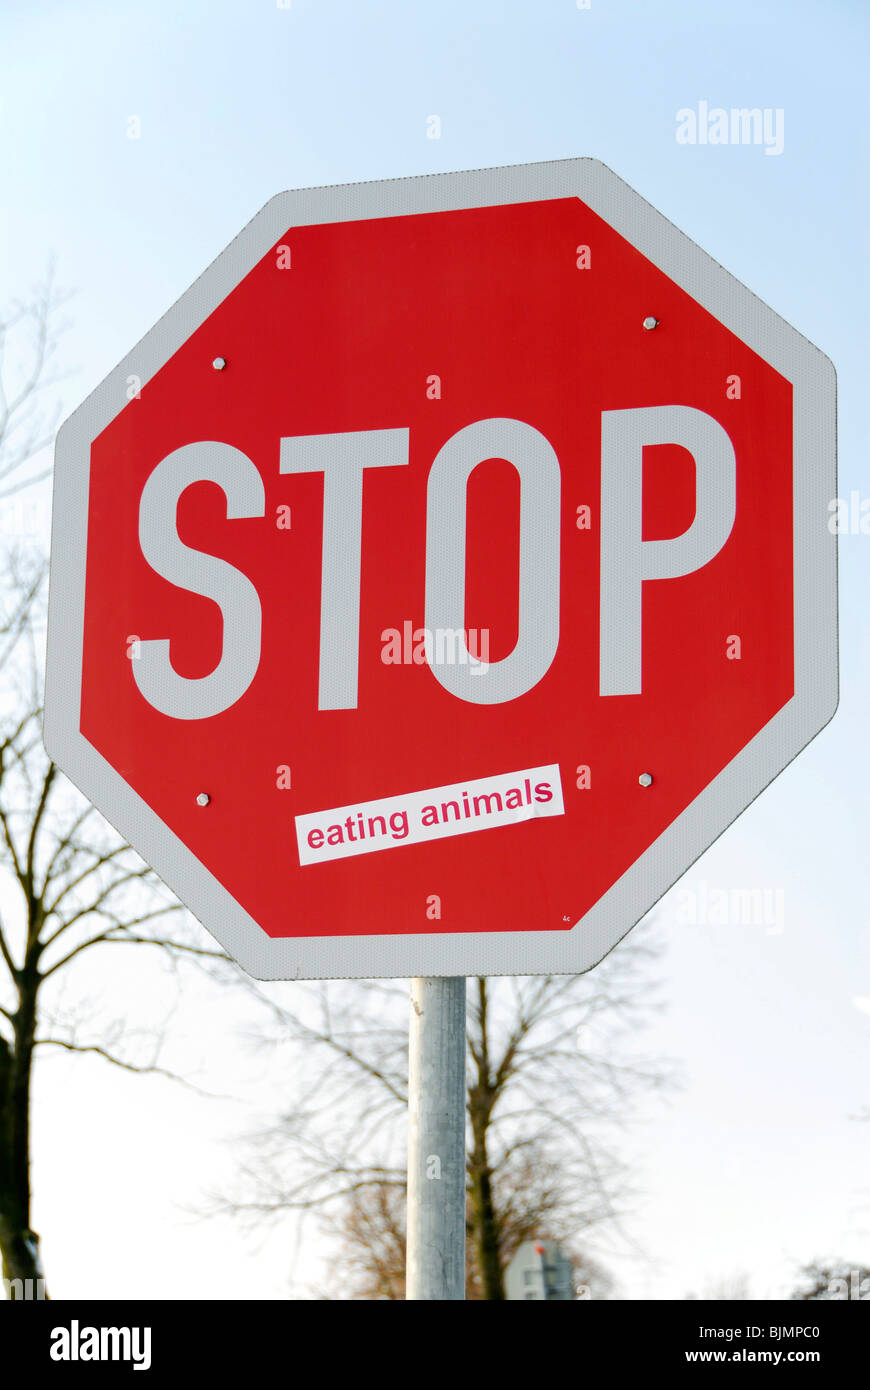 Stop eating animals, stop sign with sticker - Stock Image